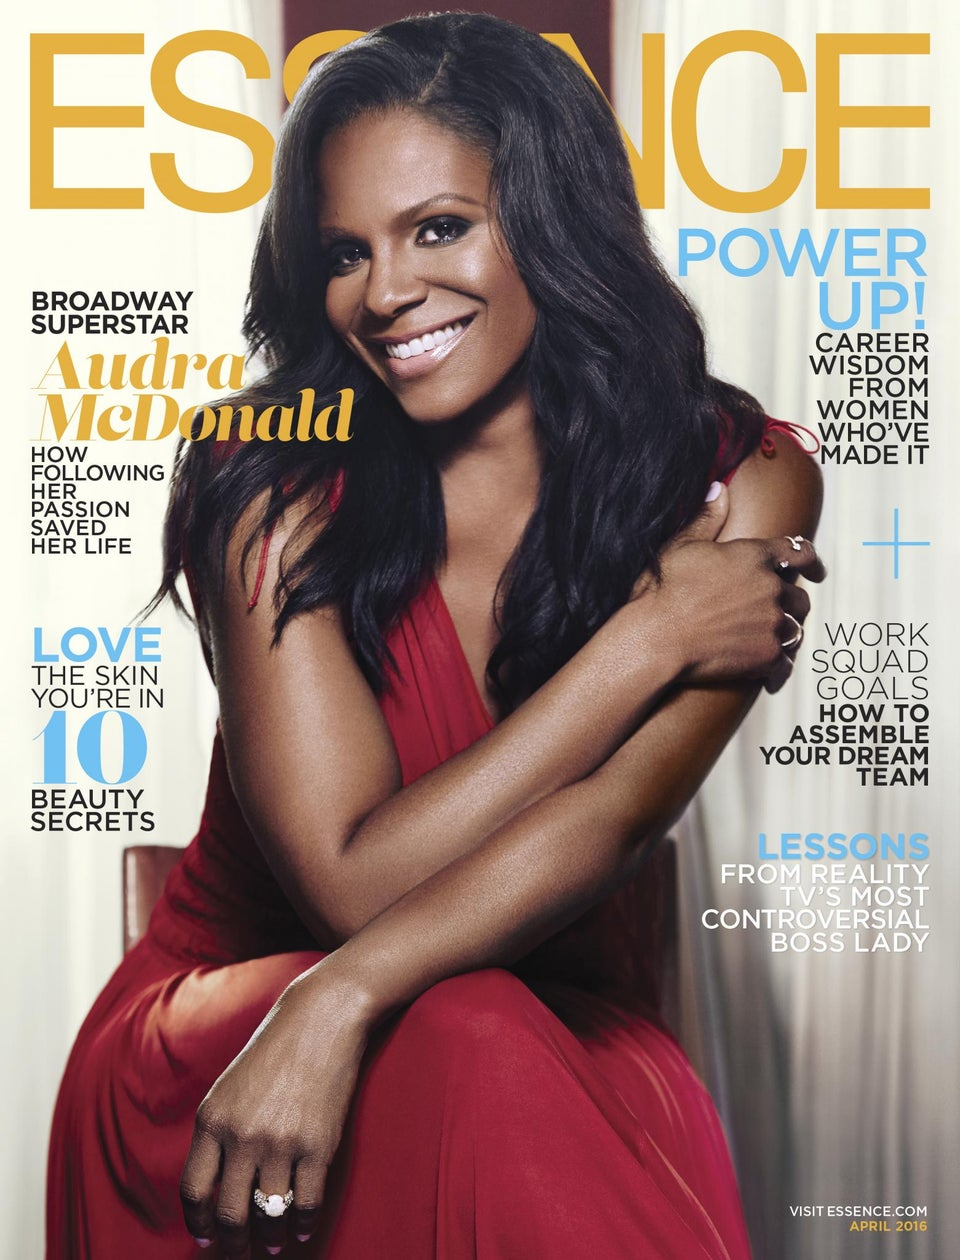 7 Things You May Not Know About ESSENCE Cover Star Audra McDonald